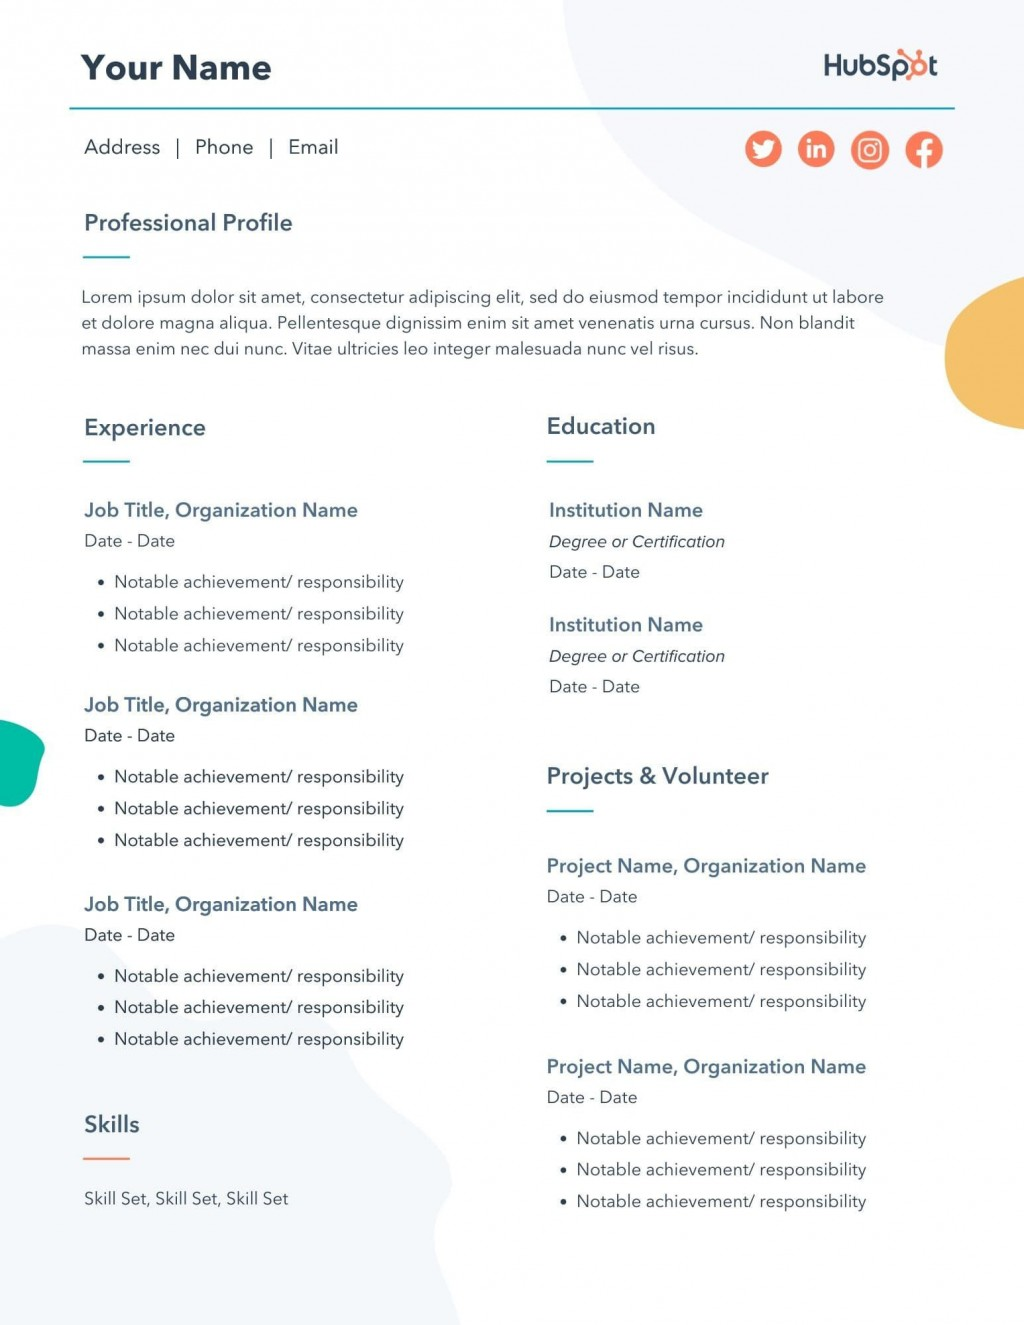 008 Unforgettable How To Make A Resume Template On Microsoft Word Inspiration  Create Cv/resume In DocxLarge